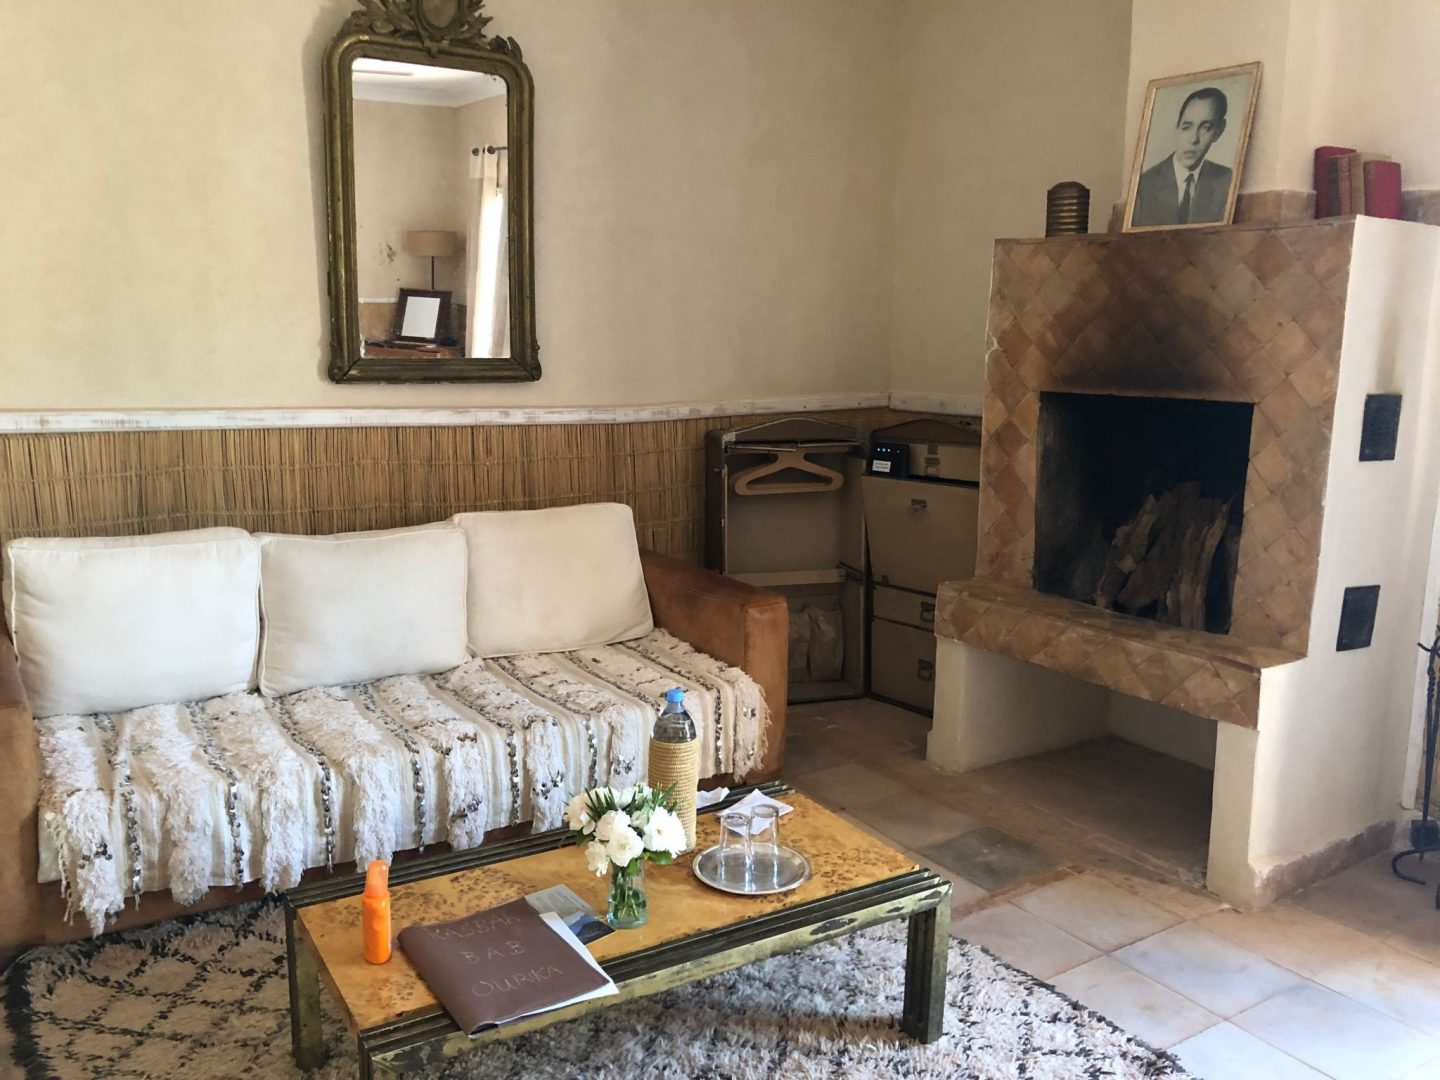 Kasbah Bab Ourika Garden room Bedroom fireplace . Perfect for winters. I love the furniture